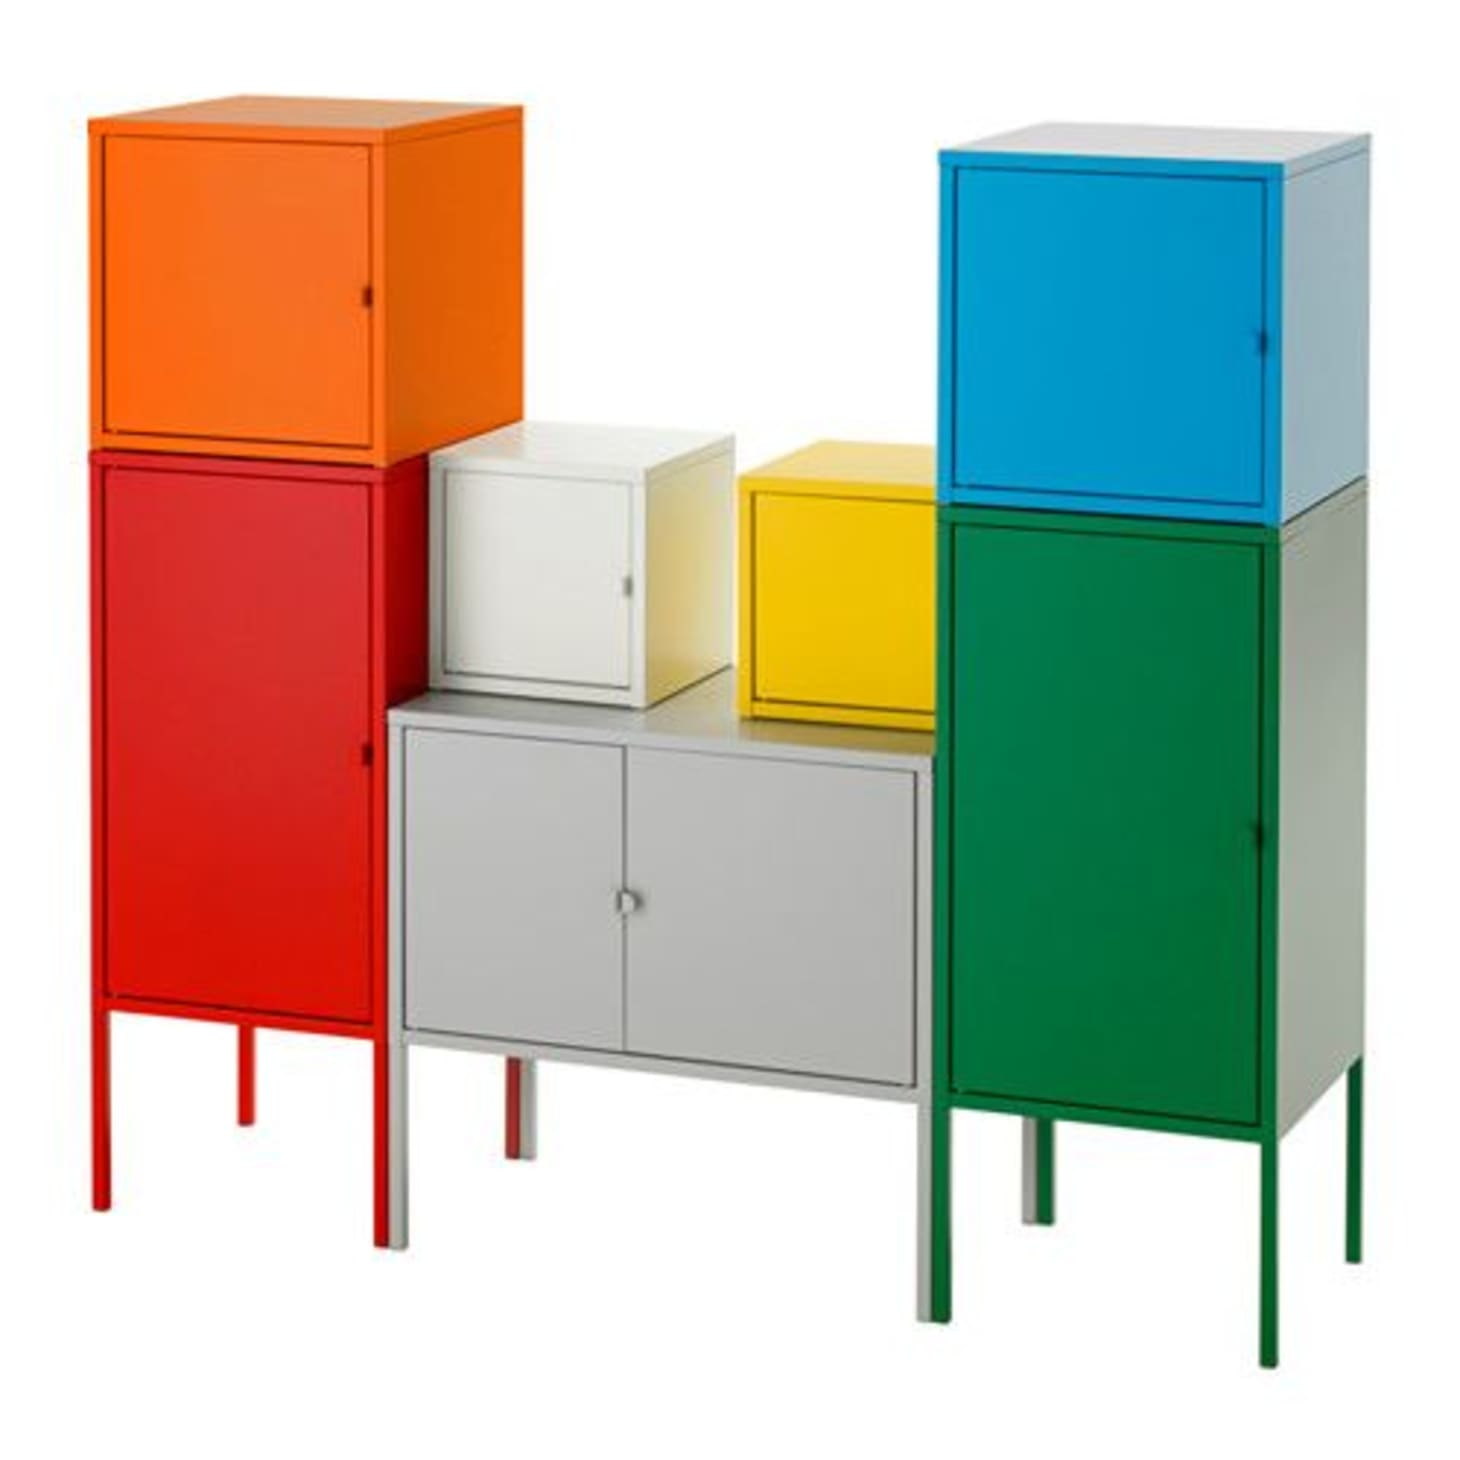 Top 10 Ikea Hacks And Diy Projects In 2017 Apartment Therapy